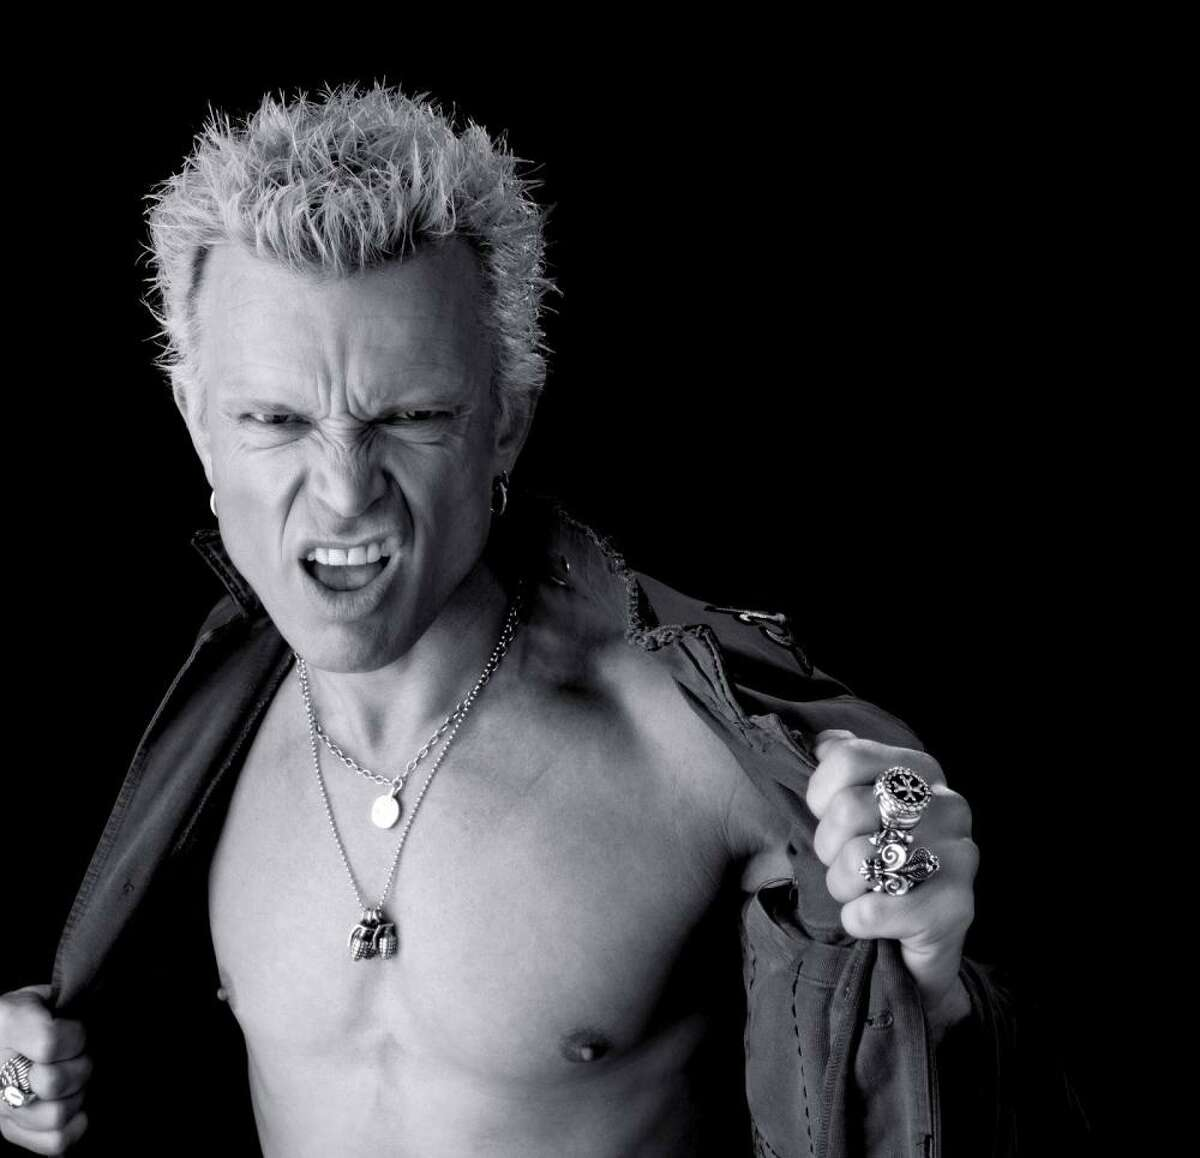 Singer Billy Idol is set to perform an outdoor show Sept. 18 at The Big E Arena in West Springfield, Mass.